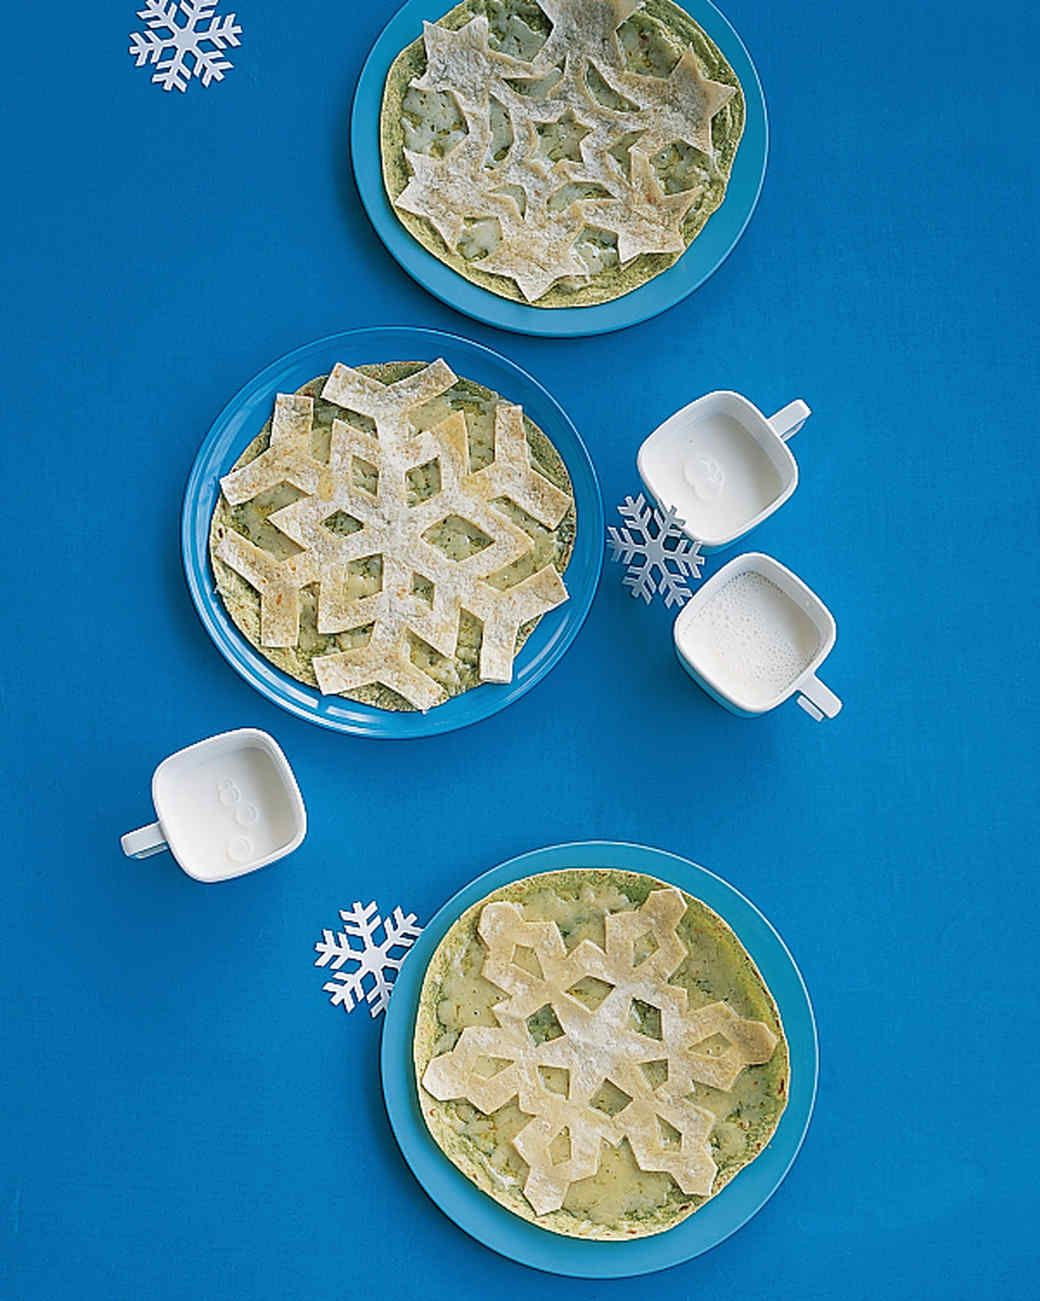 Snowflake Quesadillas Game Day Recipes   Martha Stewart Living - Take a simple cheese quesadilla to the next level by cutting the top tortilla into an intricate snowflake.